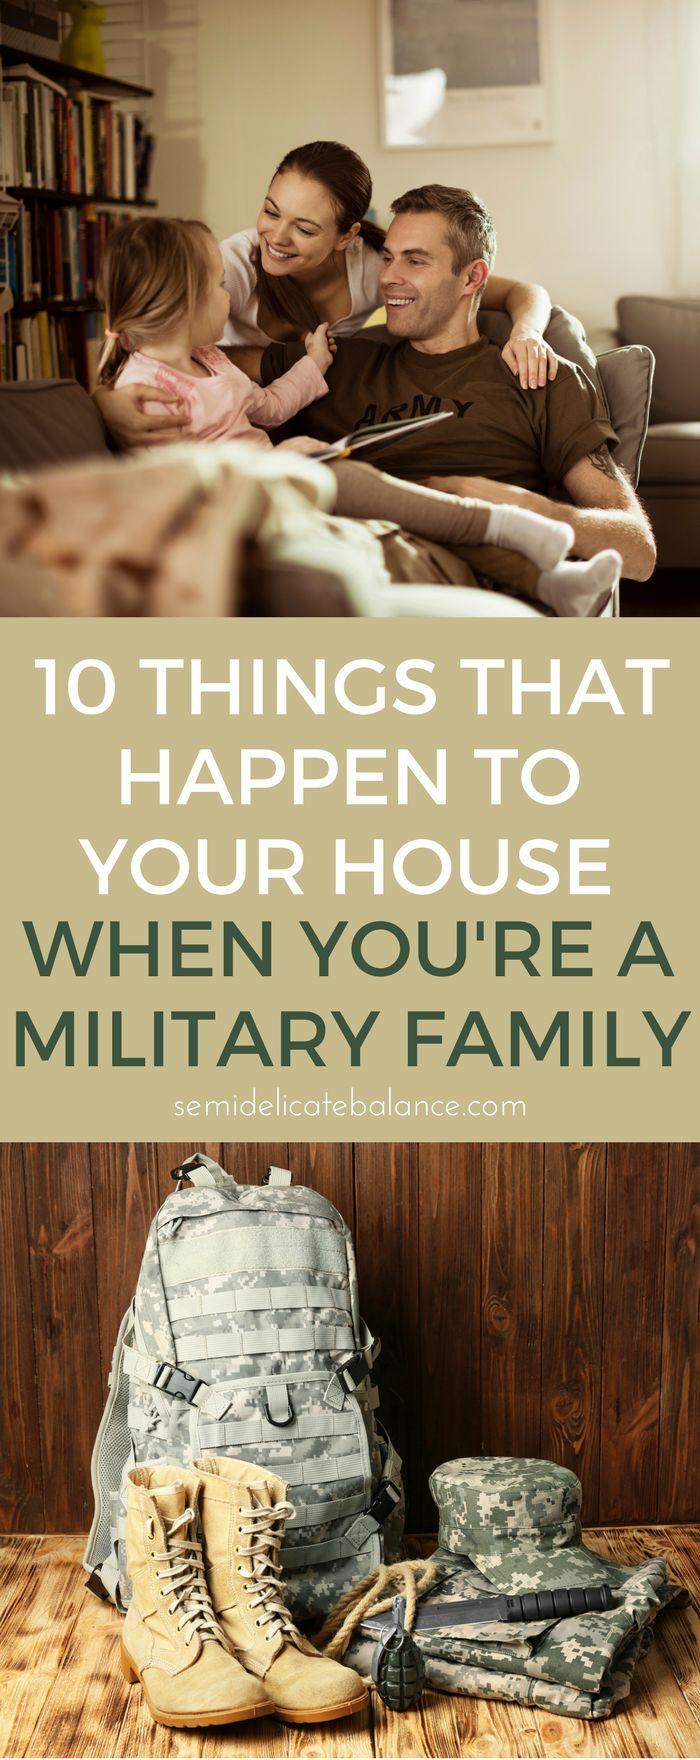 things that happen to your military home when you're a military family. It definitely affects your decor choices and ideas